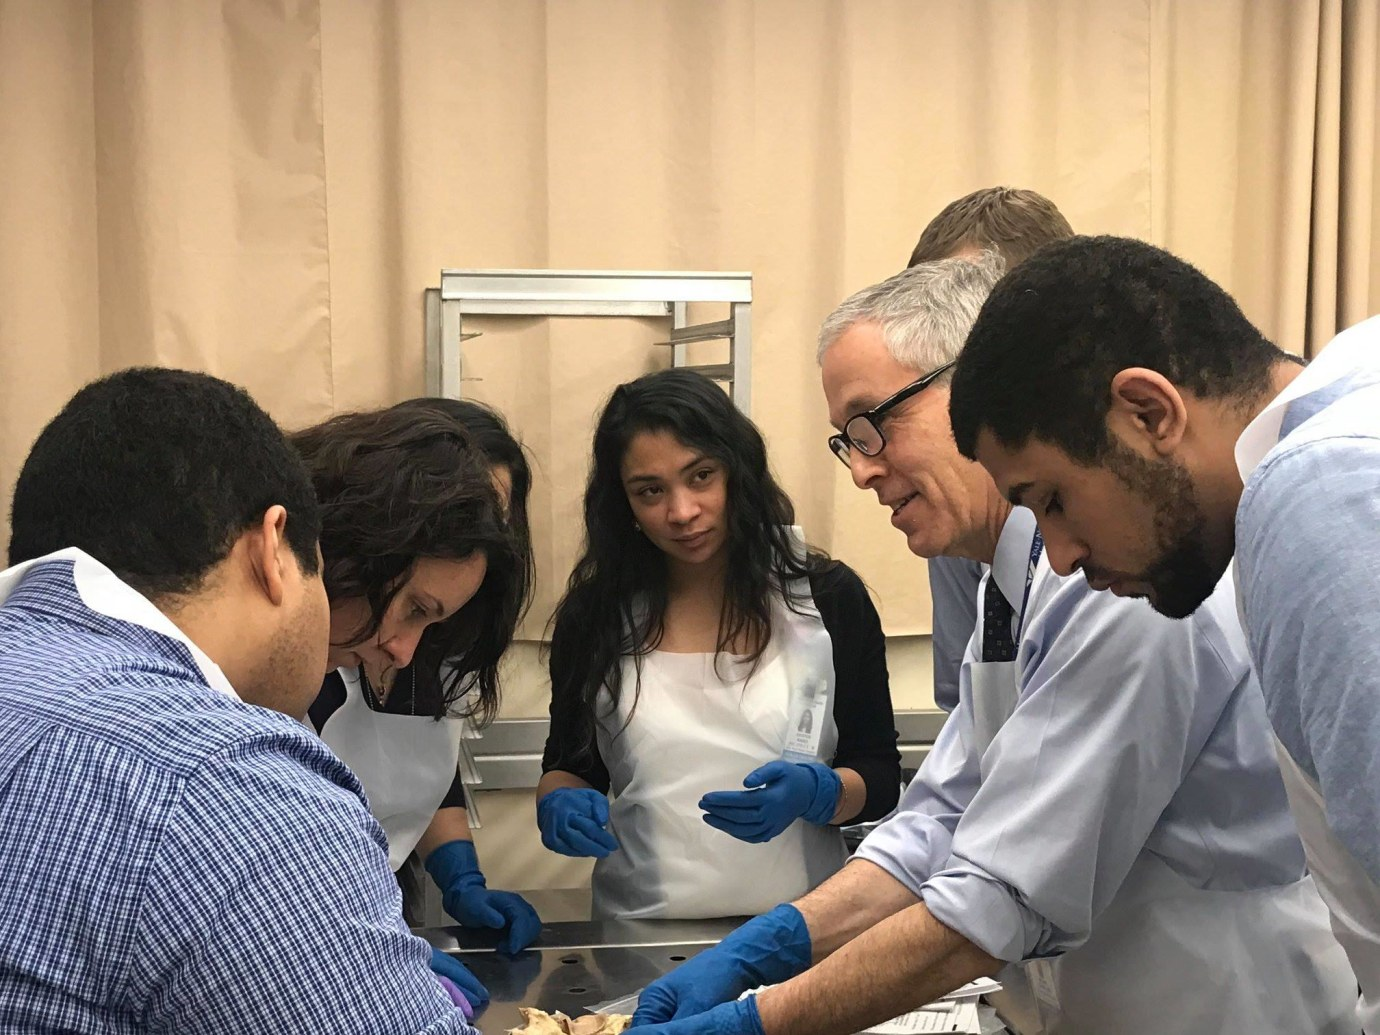 Fellows reviewing heart pathology specimens with Dr. Henry Cabin.